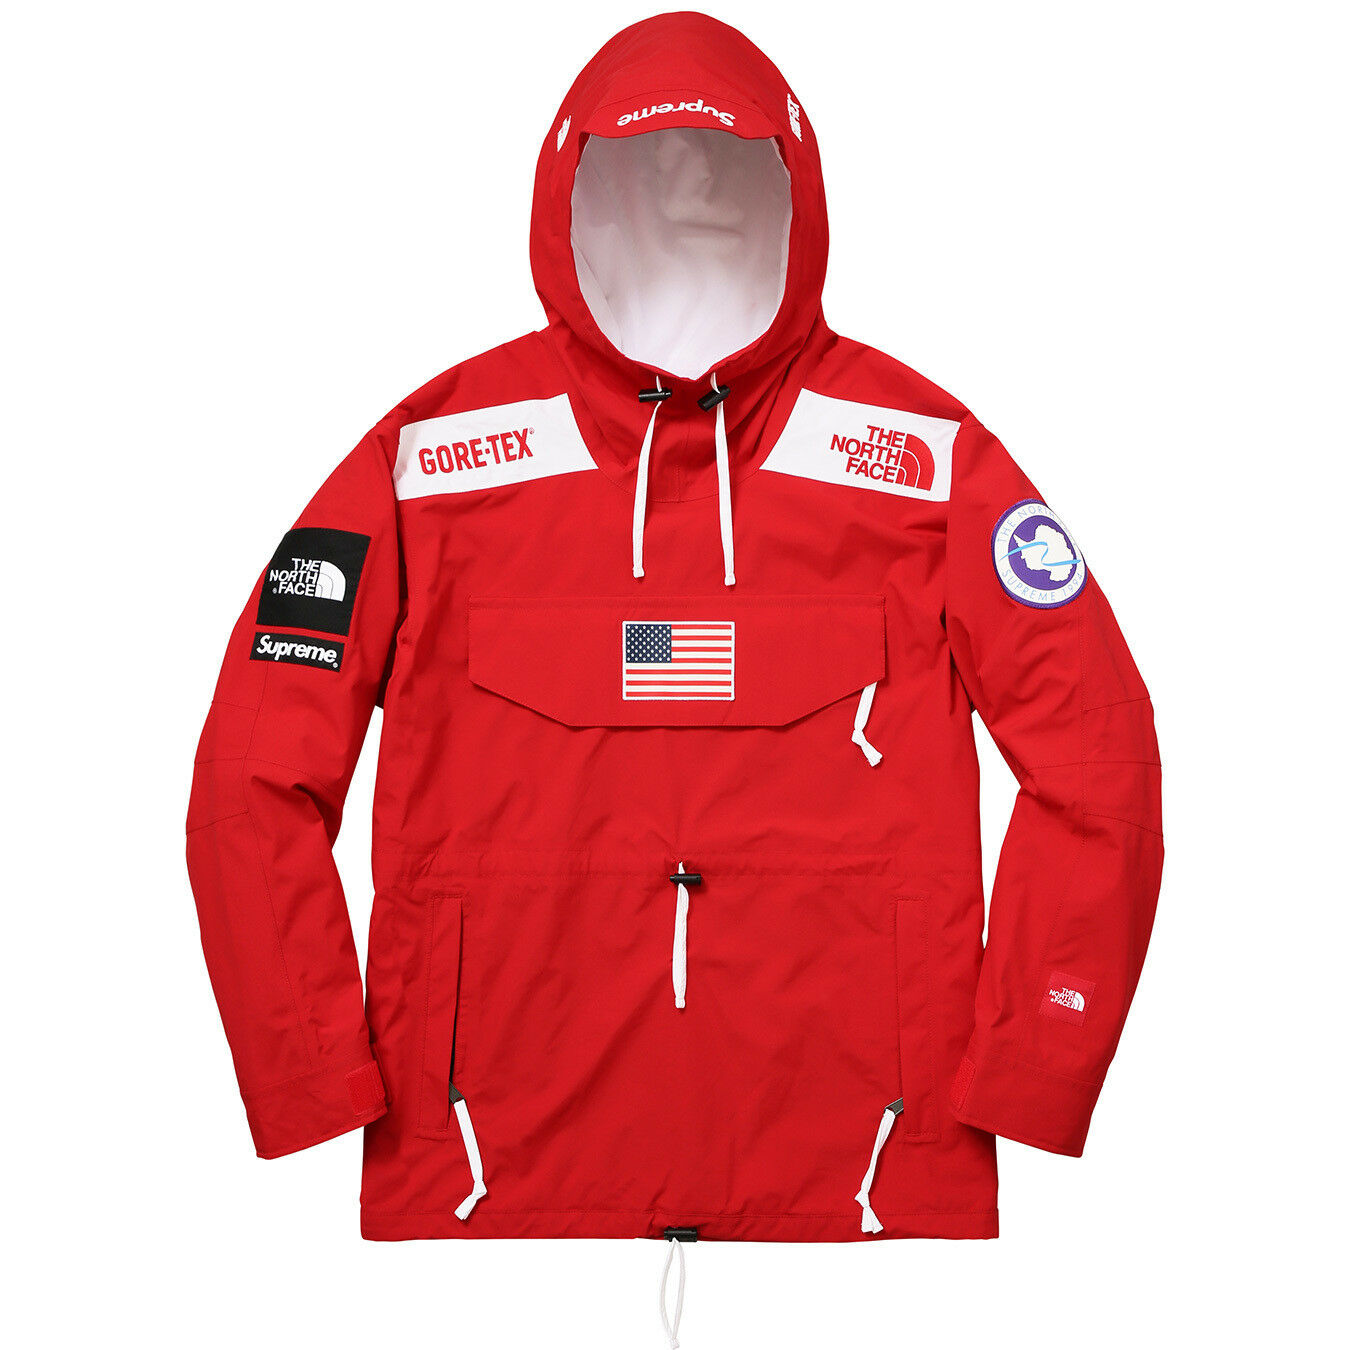 Supreme The North Face Trans Antartica Expedition Pullover ROT (Größe M) S/S 2017